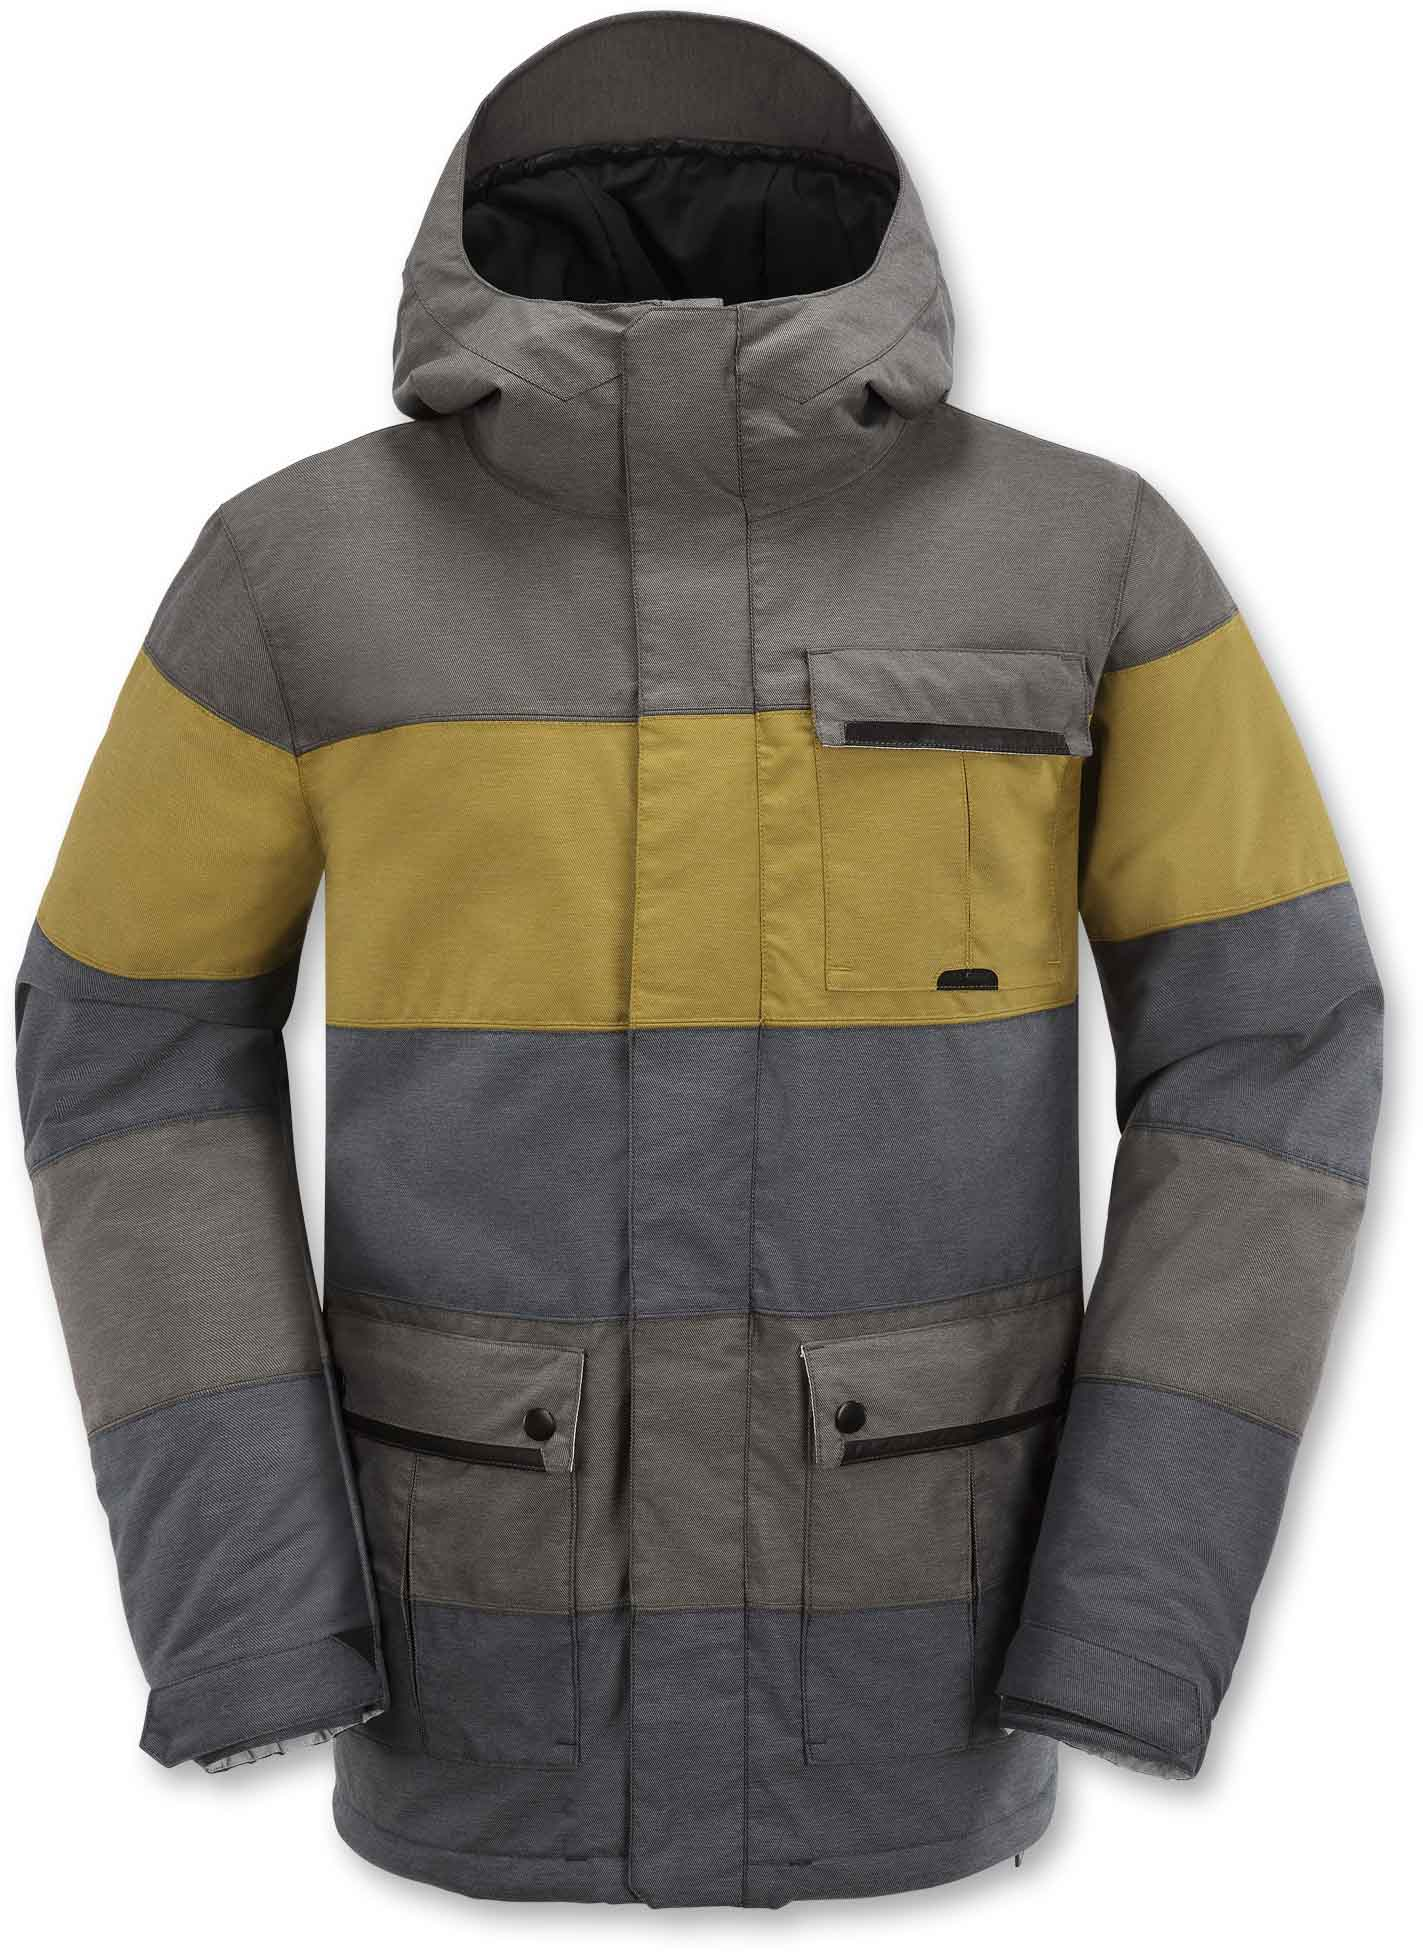 image volcom-captain-insulated-jacket-jpg